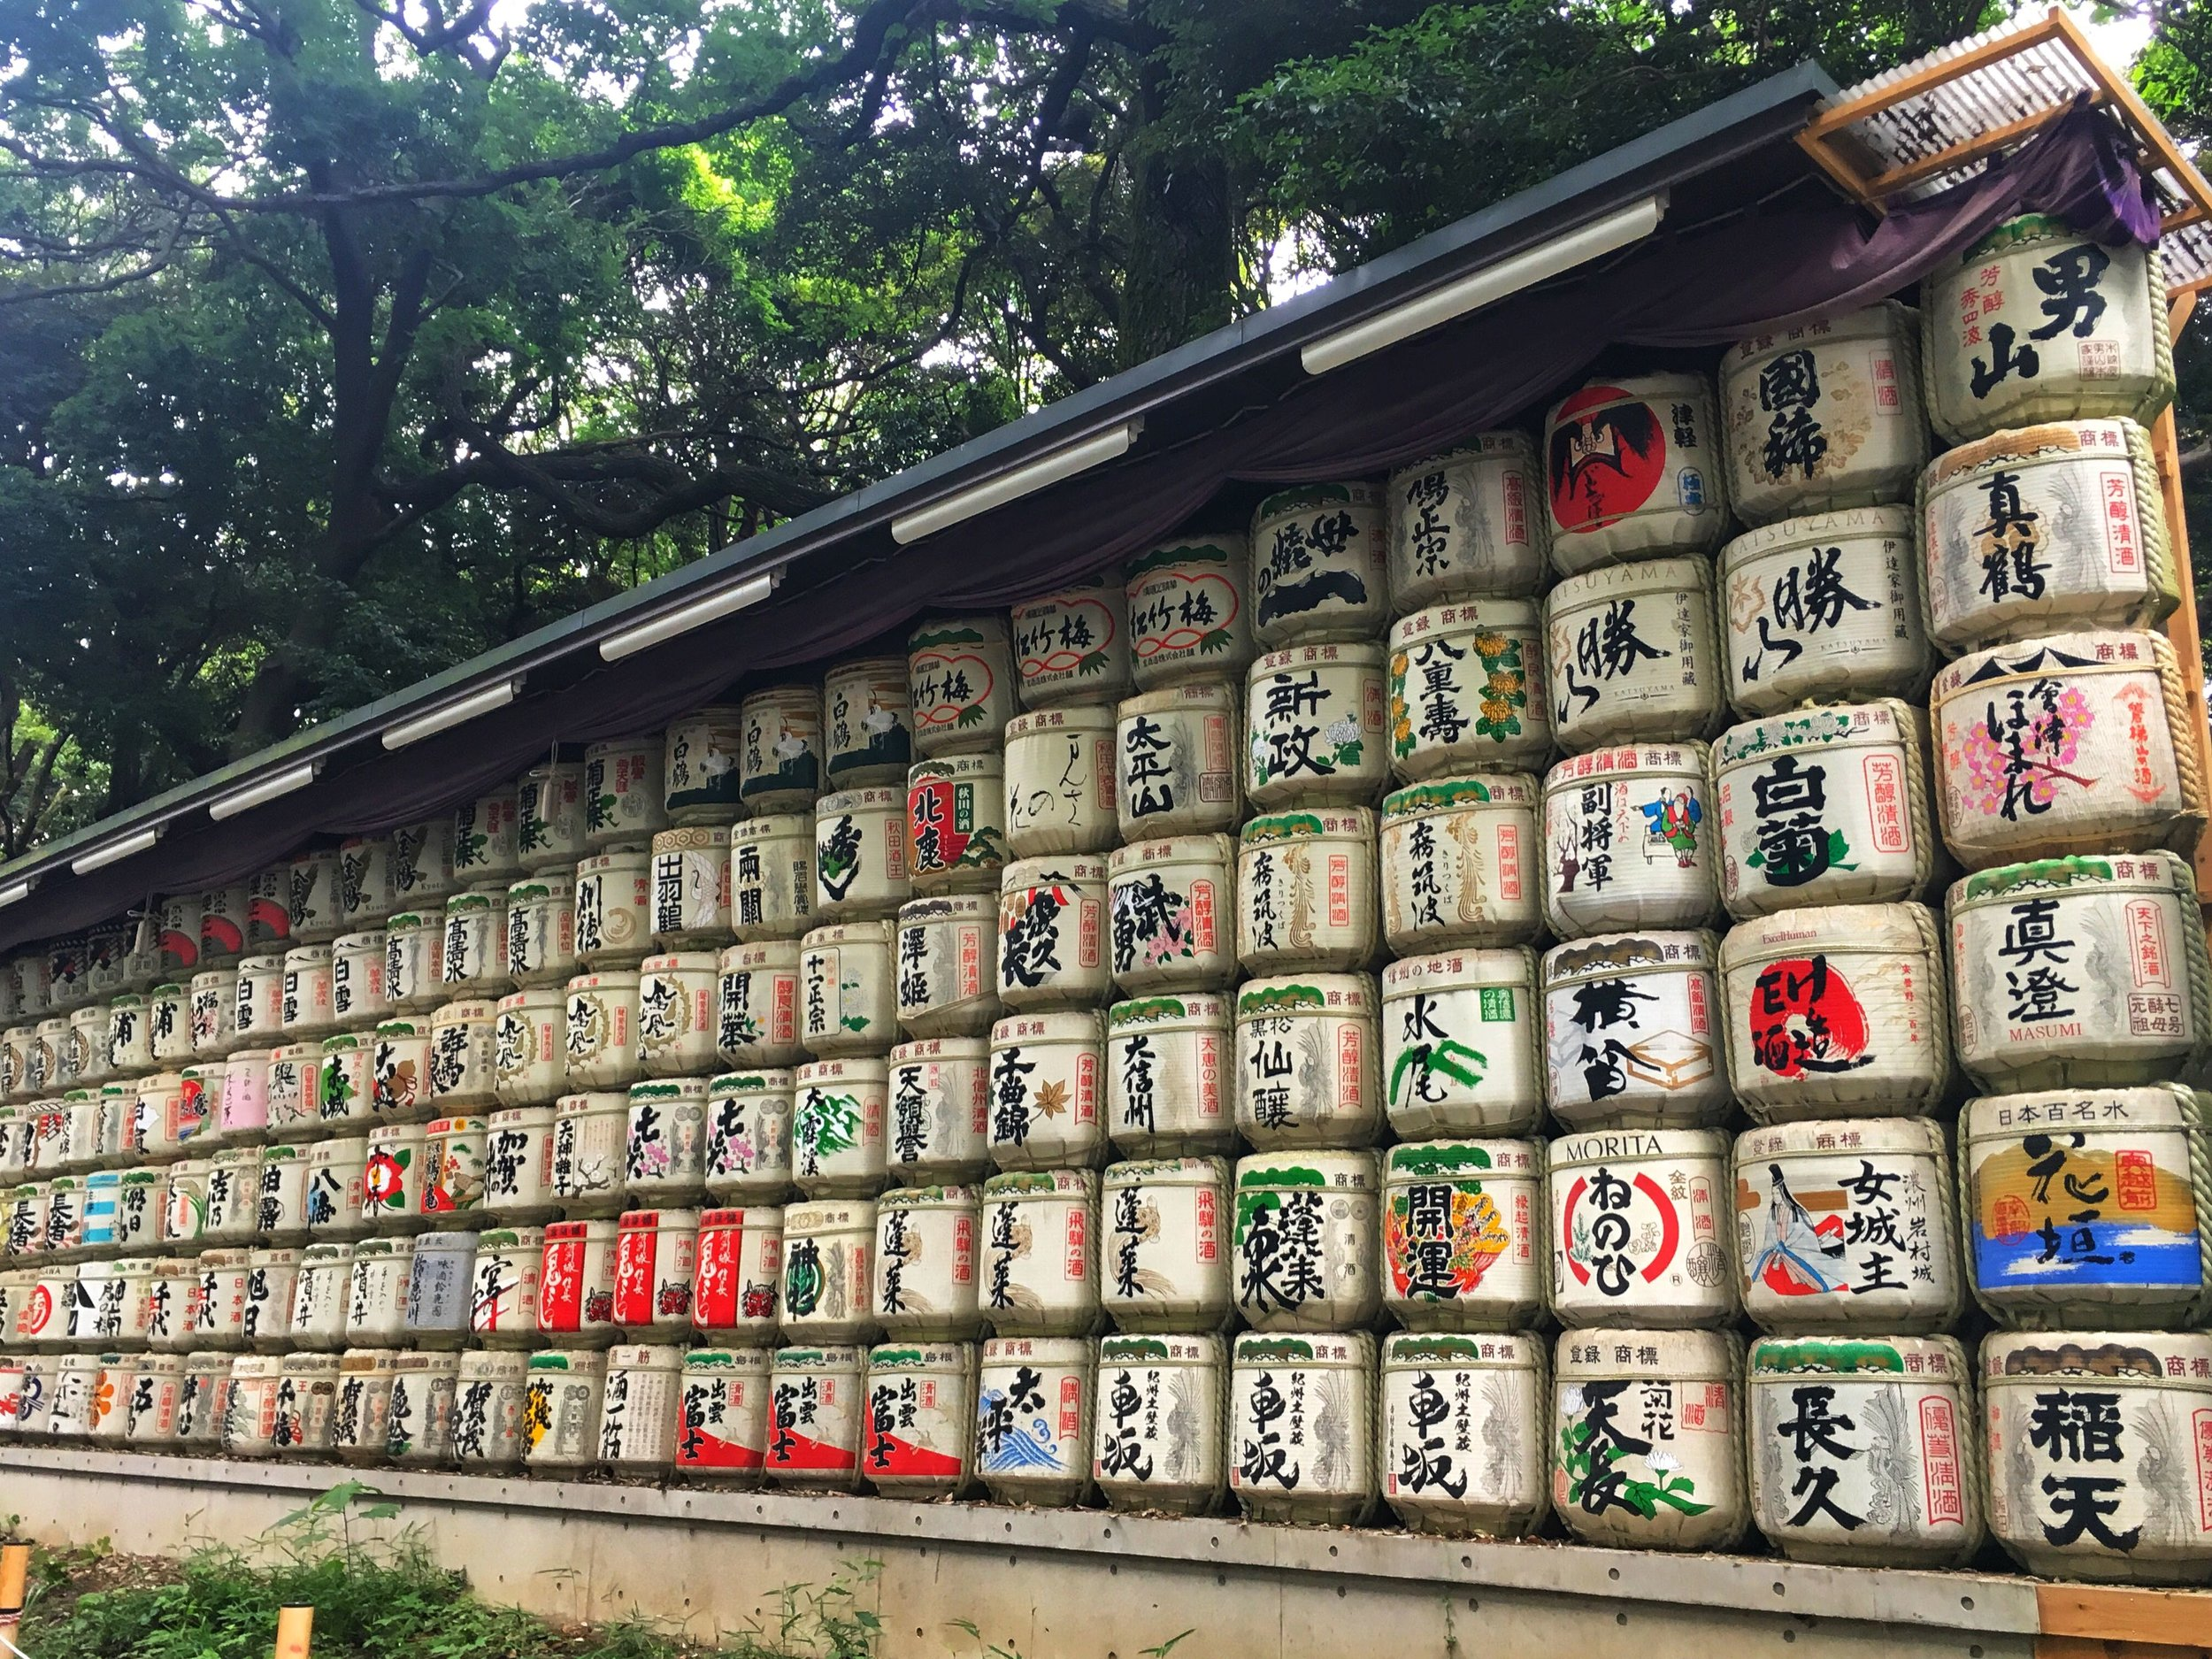 barrels of sake are donated each year by Japan's traditional brewers as an offering to the shrine